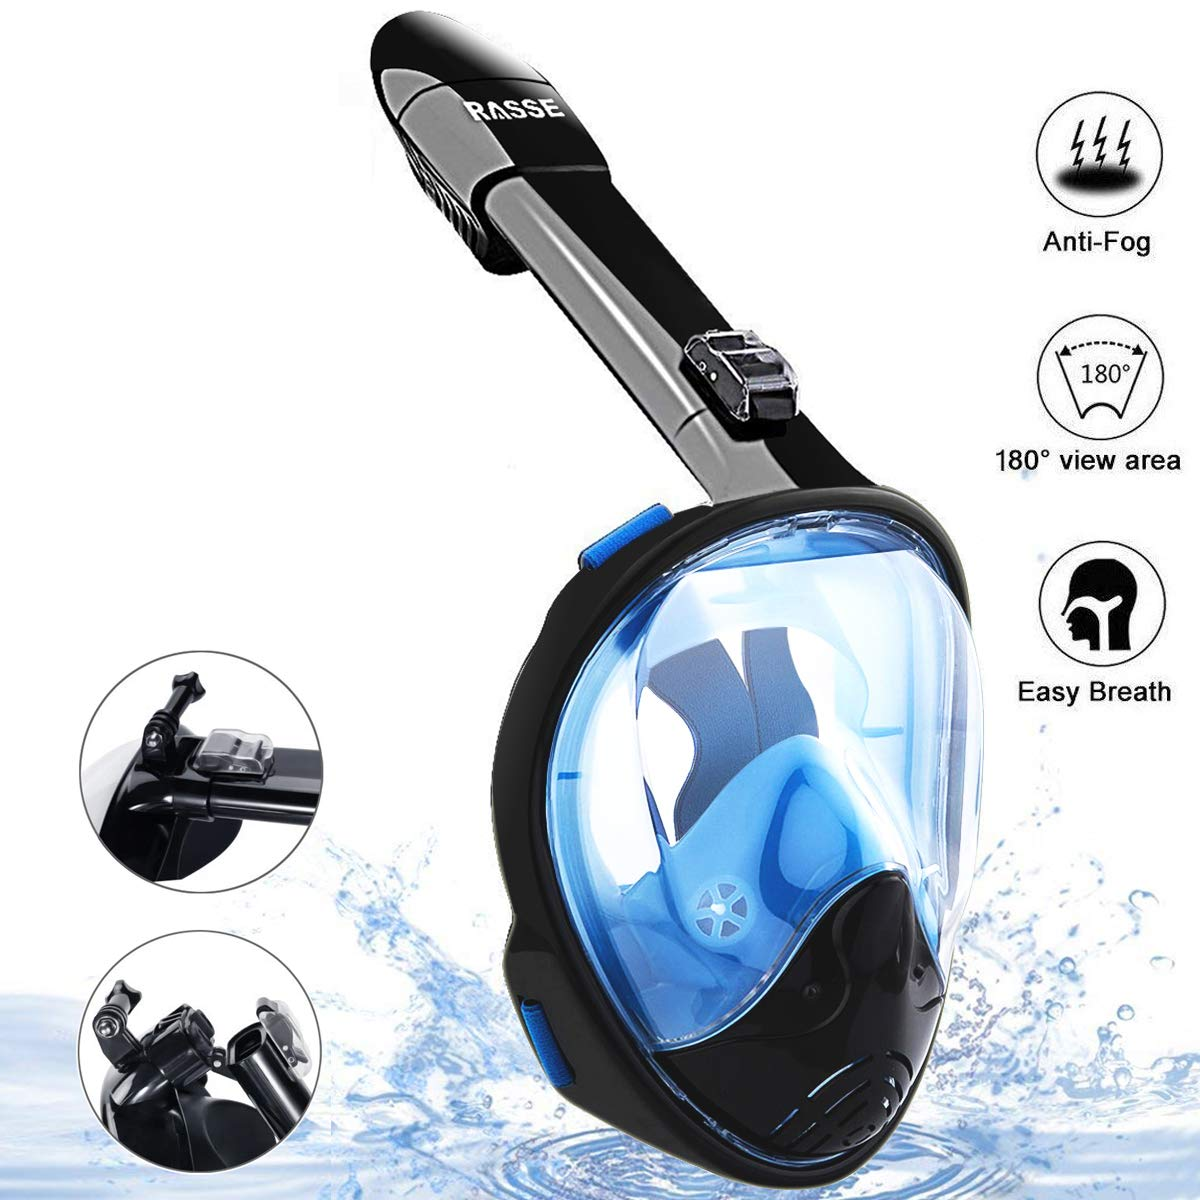 Spruce Full Face Snorkel Mask, Foldable Snorkeling Mask 180°Compatible Panoramic View with Detachable Camera Mount, Anti-Fog Anti-Leak Diving Mask with Adjustable Head Strap for Adults Youth Kids